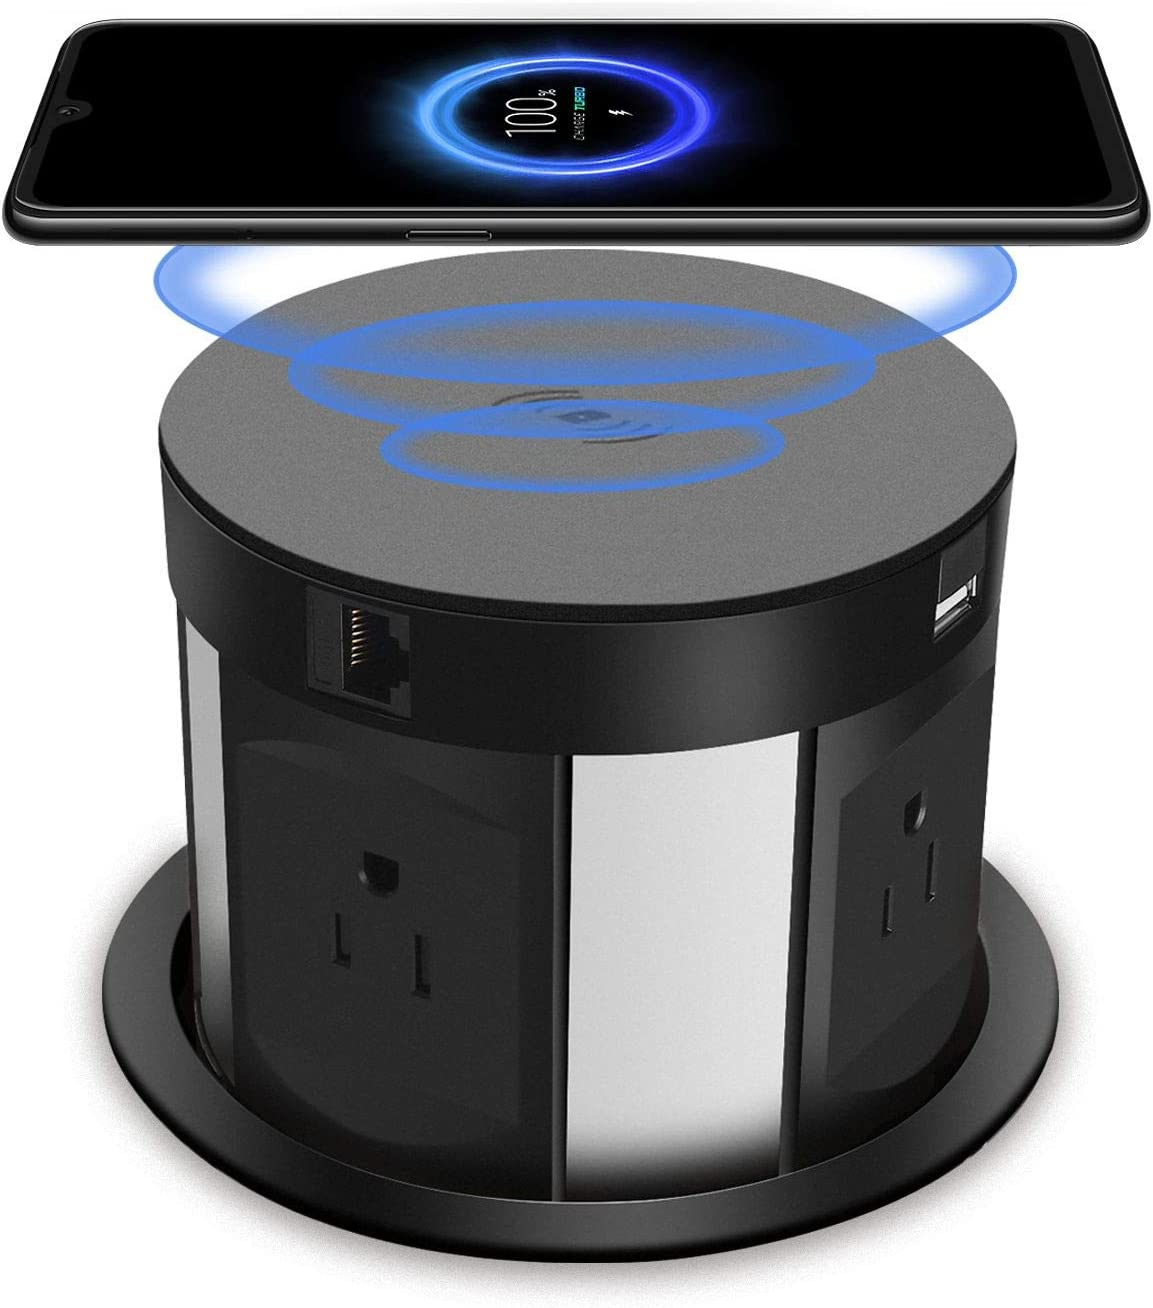 Automatic Pop Up Sockets,Retractable Recessed Power Strip,Pop Up Power Strip 4 Outlets,with Wireless Charger,2 USB Charging Ports, RJ45 Port,HDMI Port for Office Table and Workshop (Black)